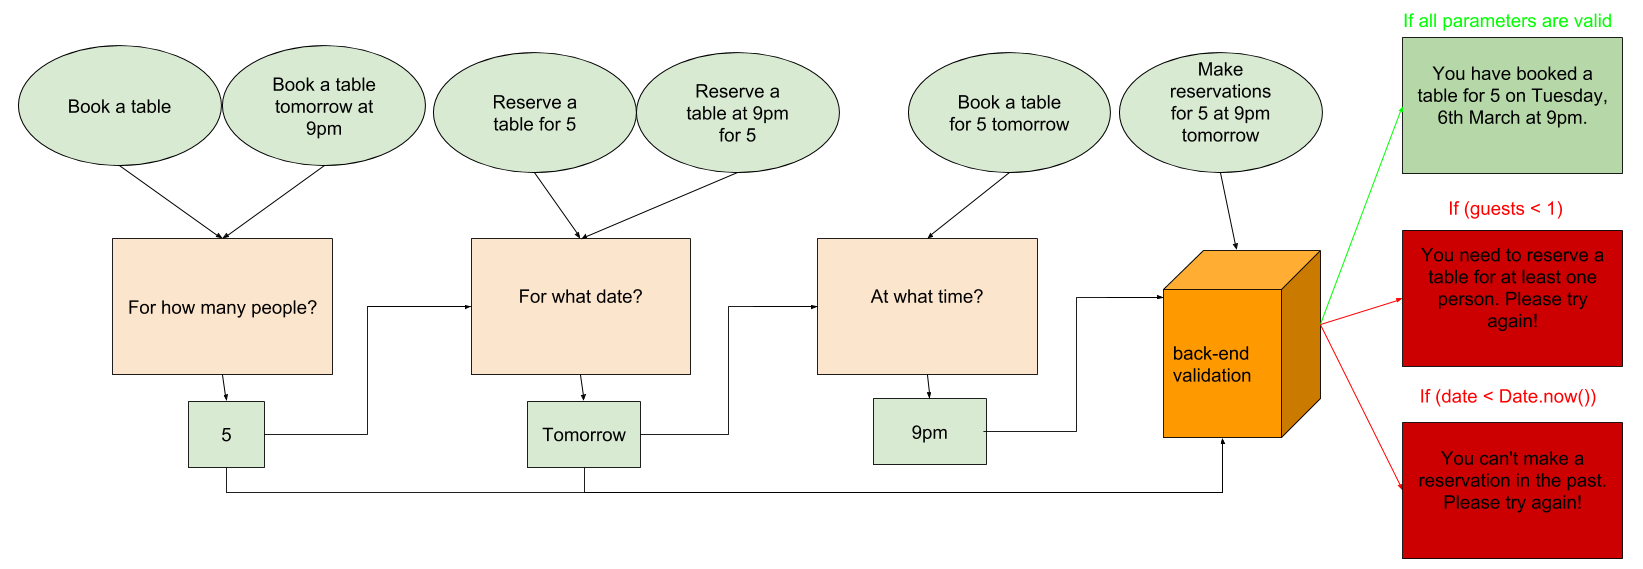 Dialogflow Restaurant Chatbot Tutorial 5 Chatbots Life Process Flow Diagram The Now Illustrates When Back End Is Called And What Are Possible Responses Depending On Validation